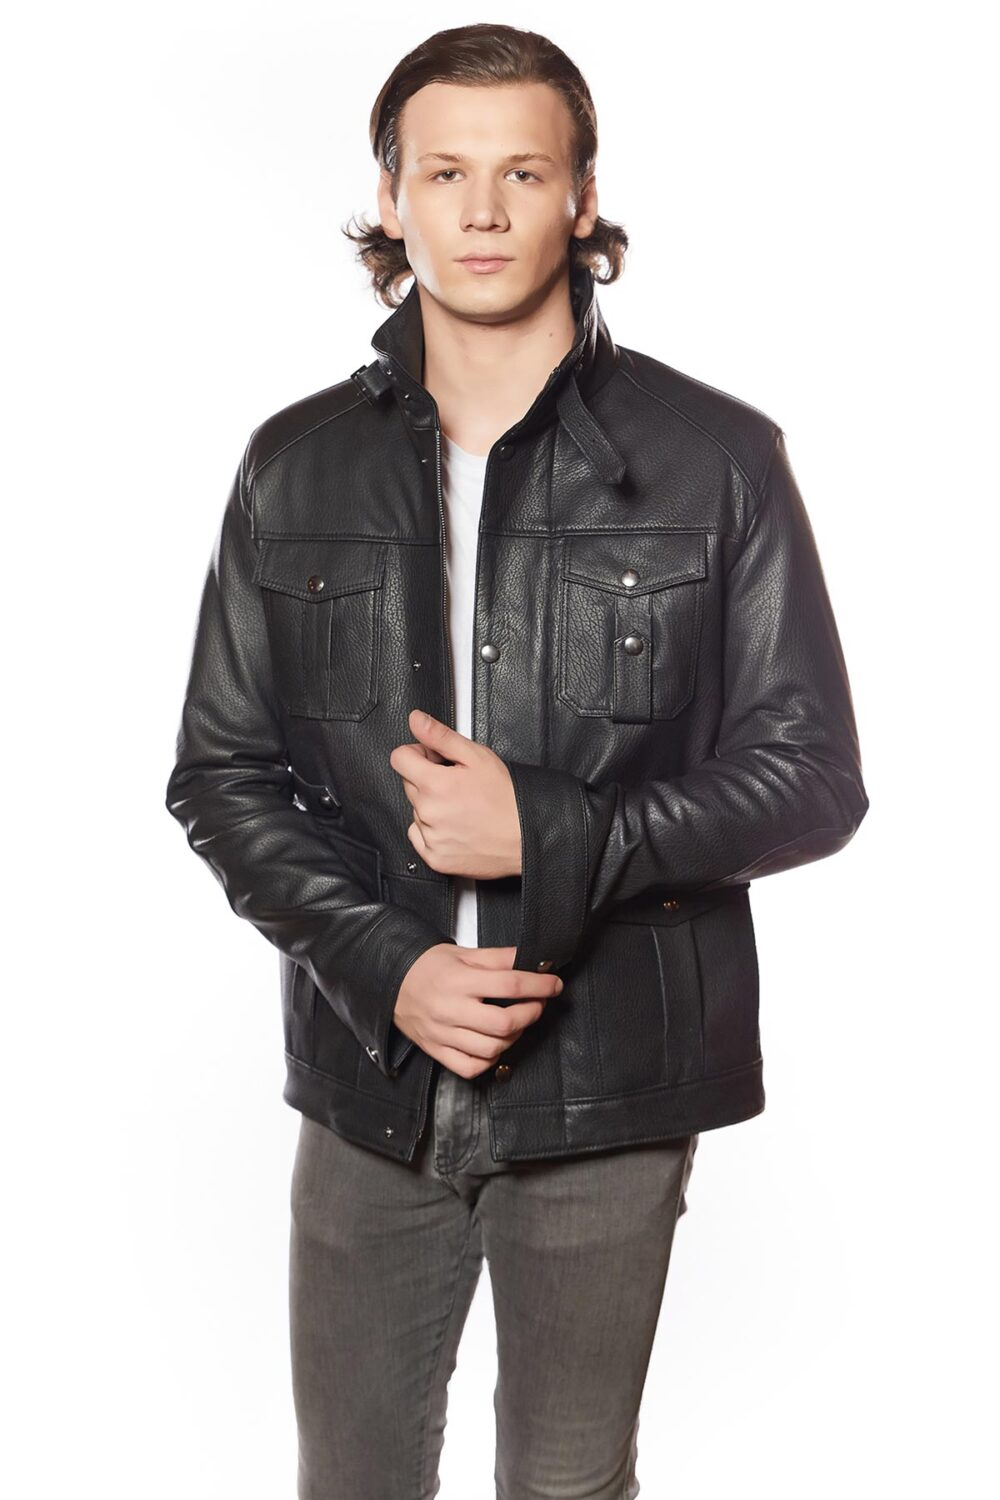 Magento Men's Leather Jacket Black